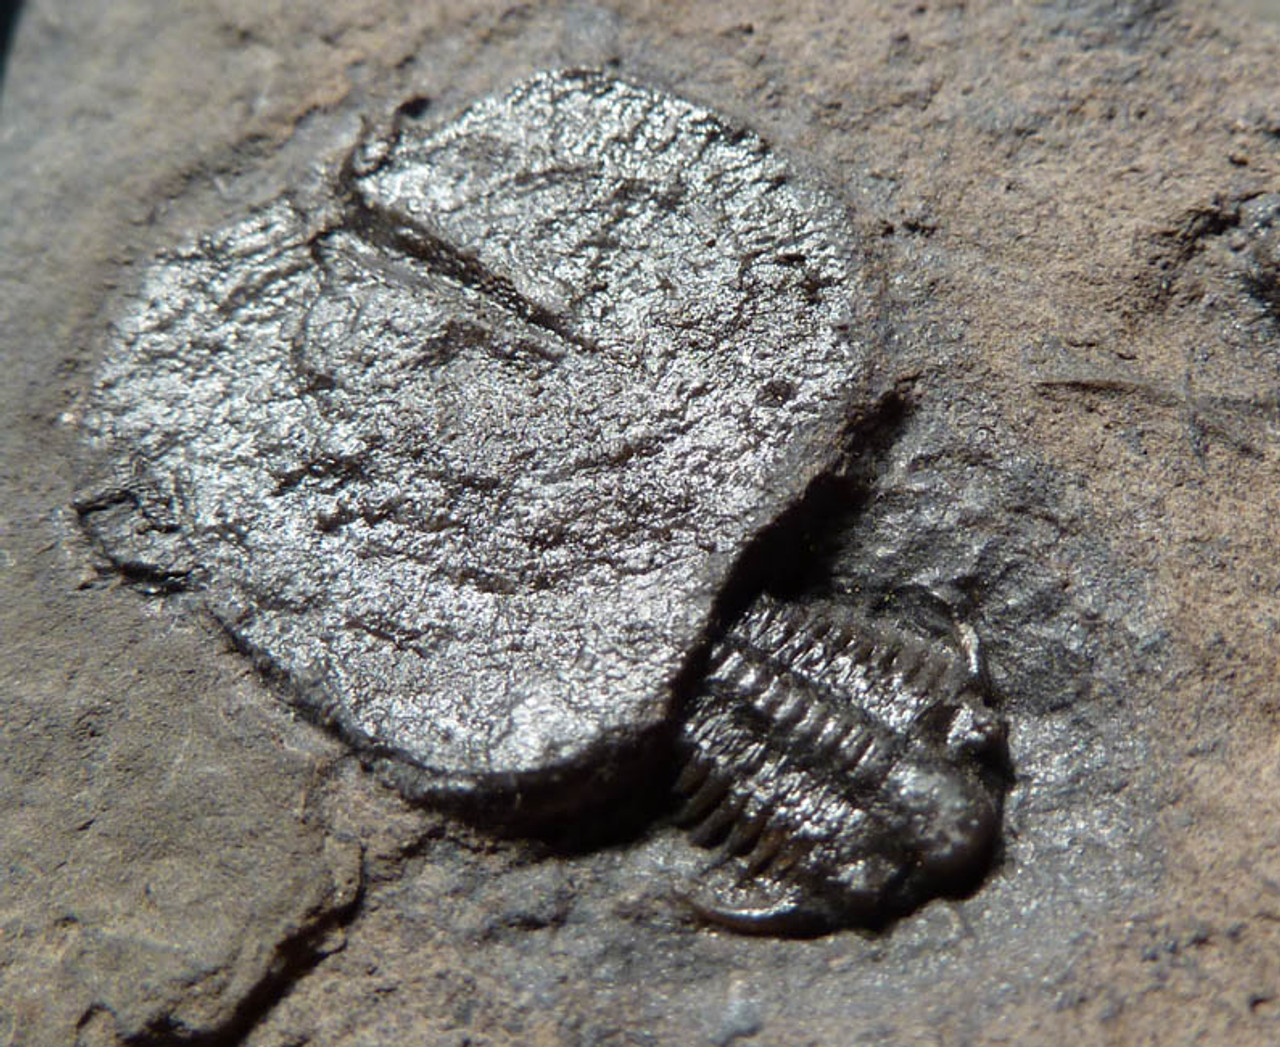 NT003 - ORDOVICIAN CERAURUS TRILOBITE WITH BRYOZOAN COLONY FROM WORLD FAMOUS TYPE SITE IN TRENTON, NEW YORK, USA